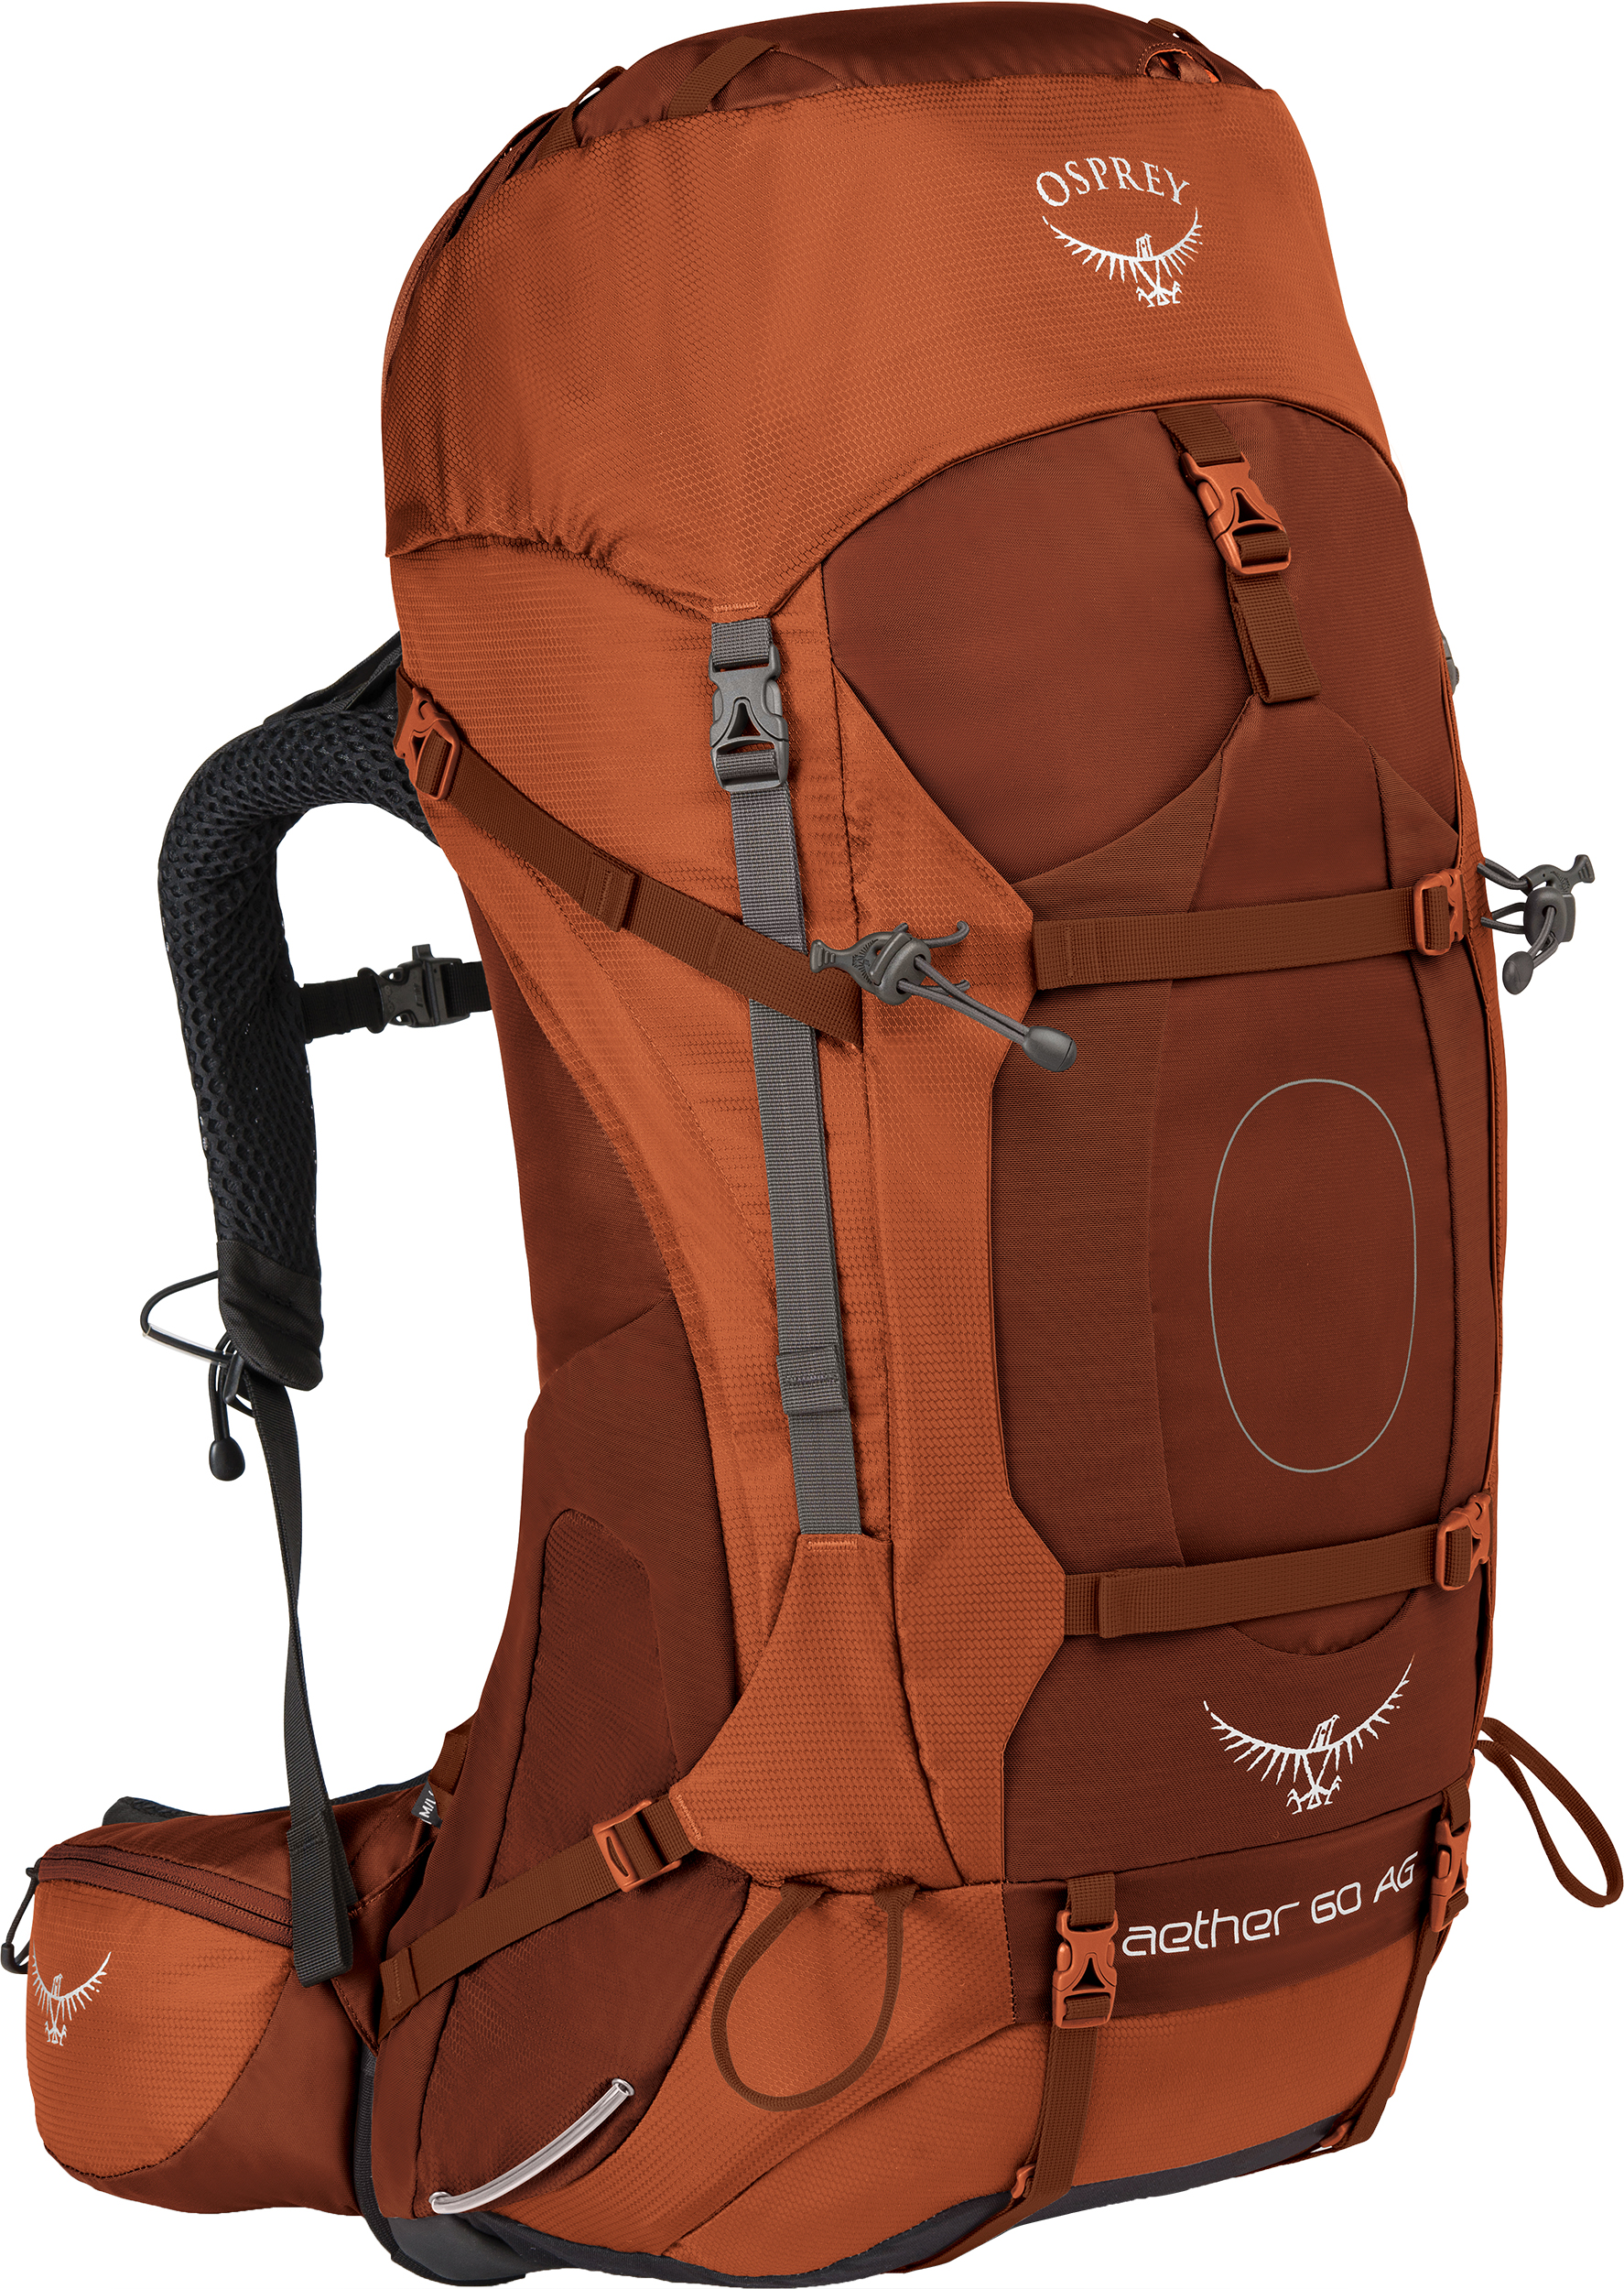 9de94bd137 Osprey Aether 60 AG Backpack - Men s